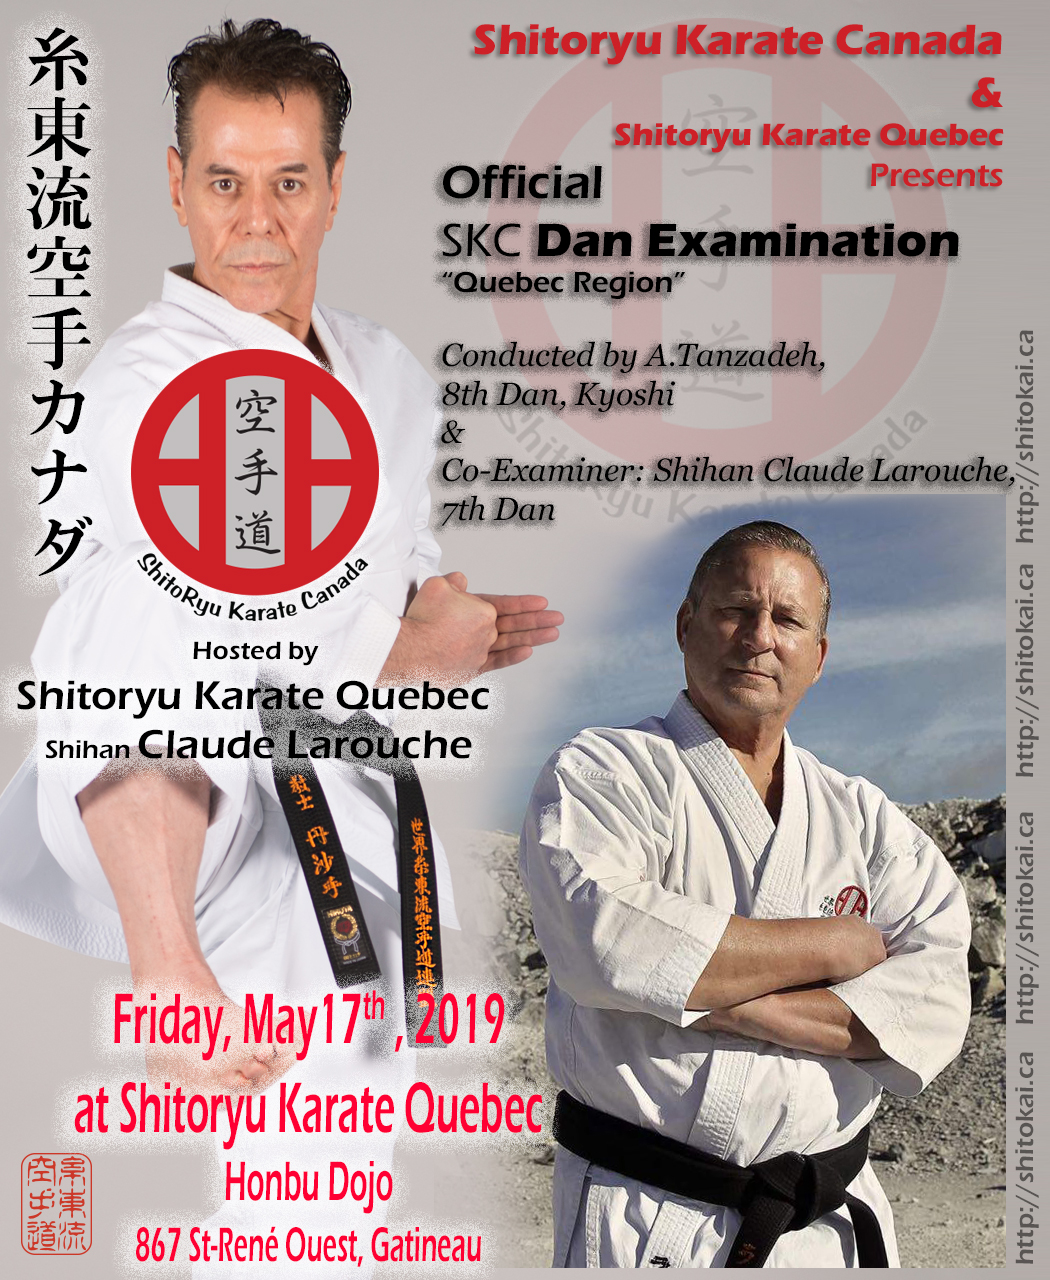 Kyoshi Tanzadeh, 8th Dan, karate seminars in Quebec - May 2019